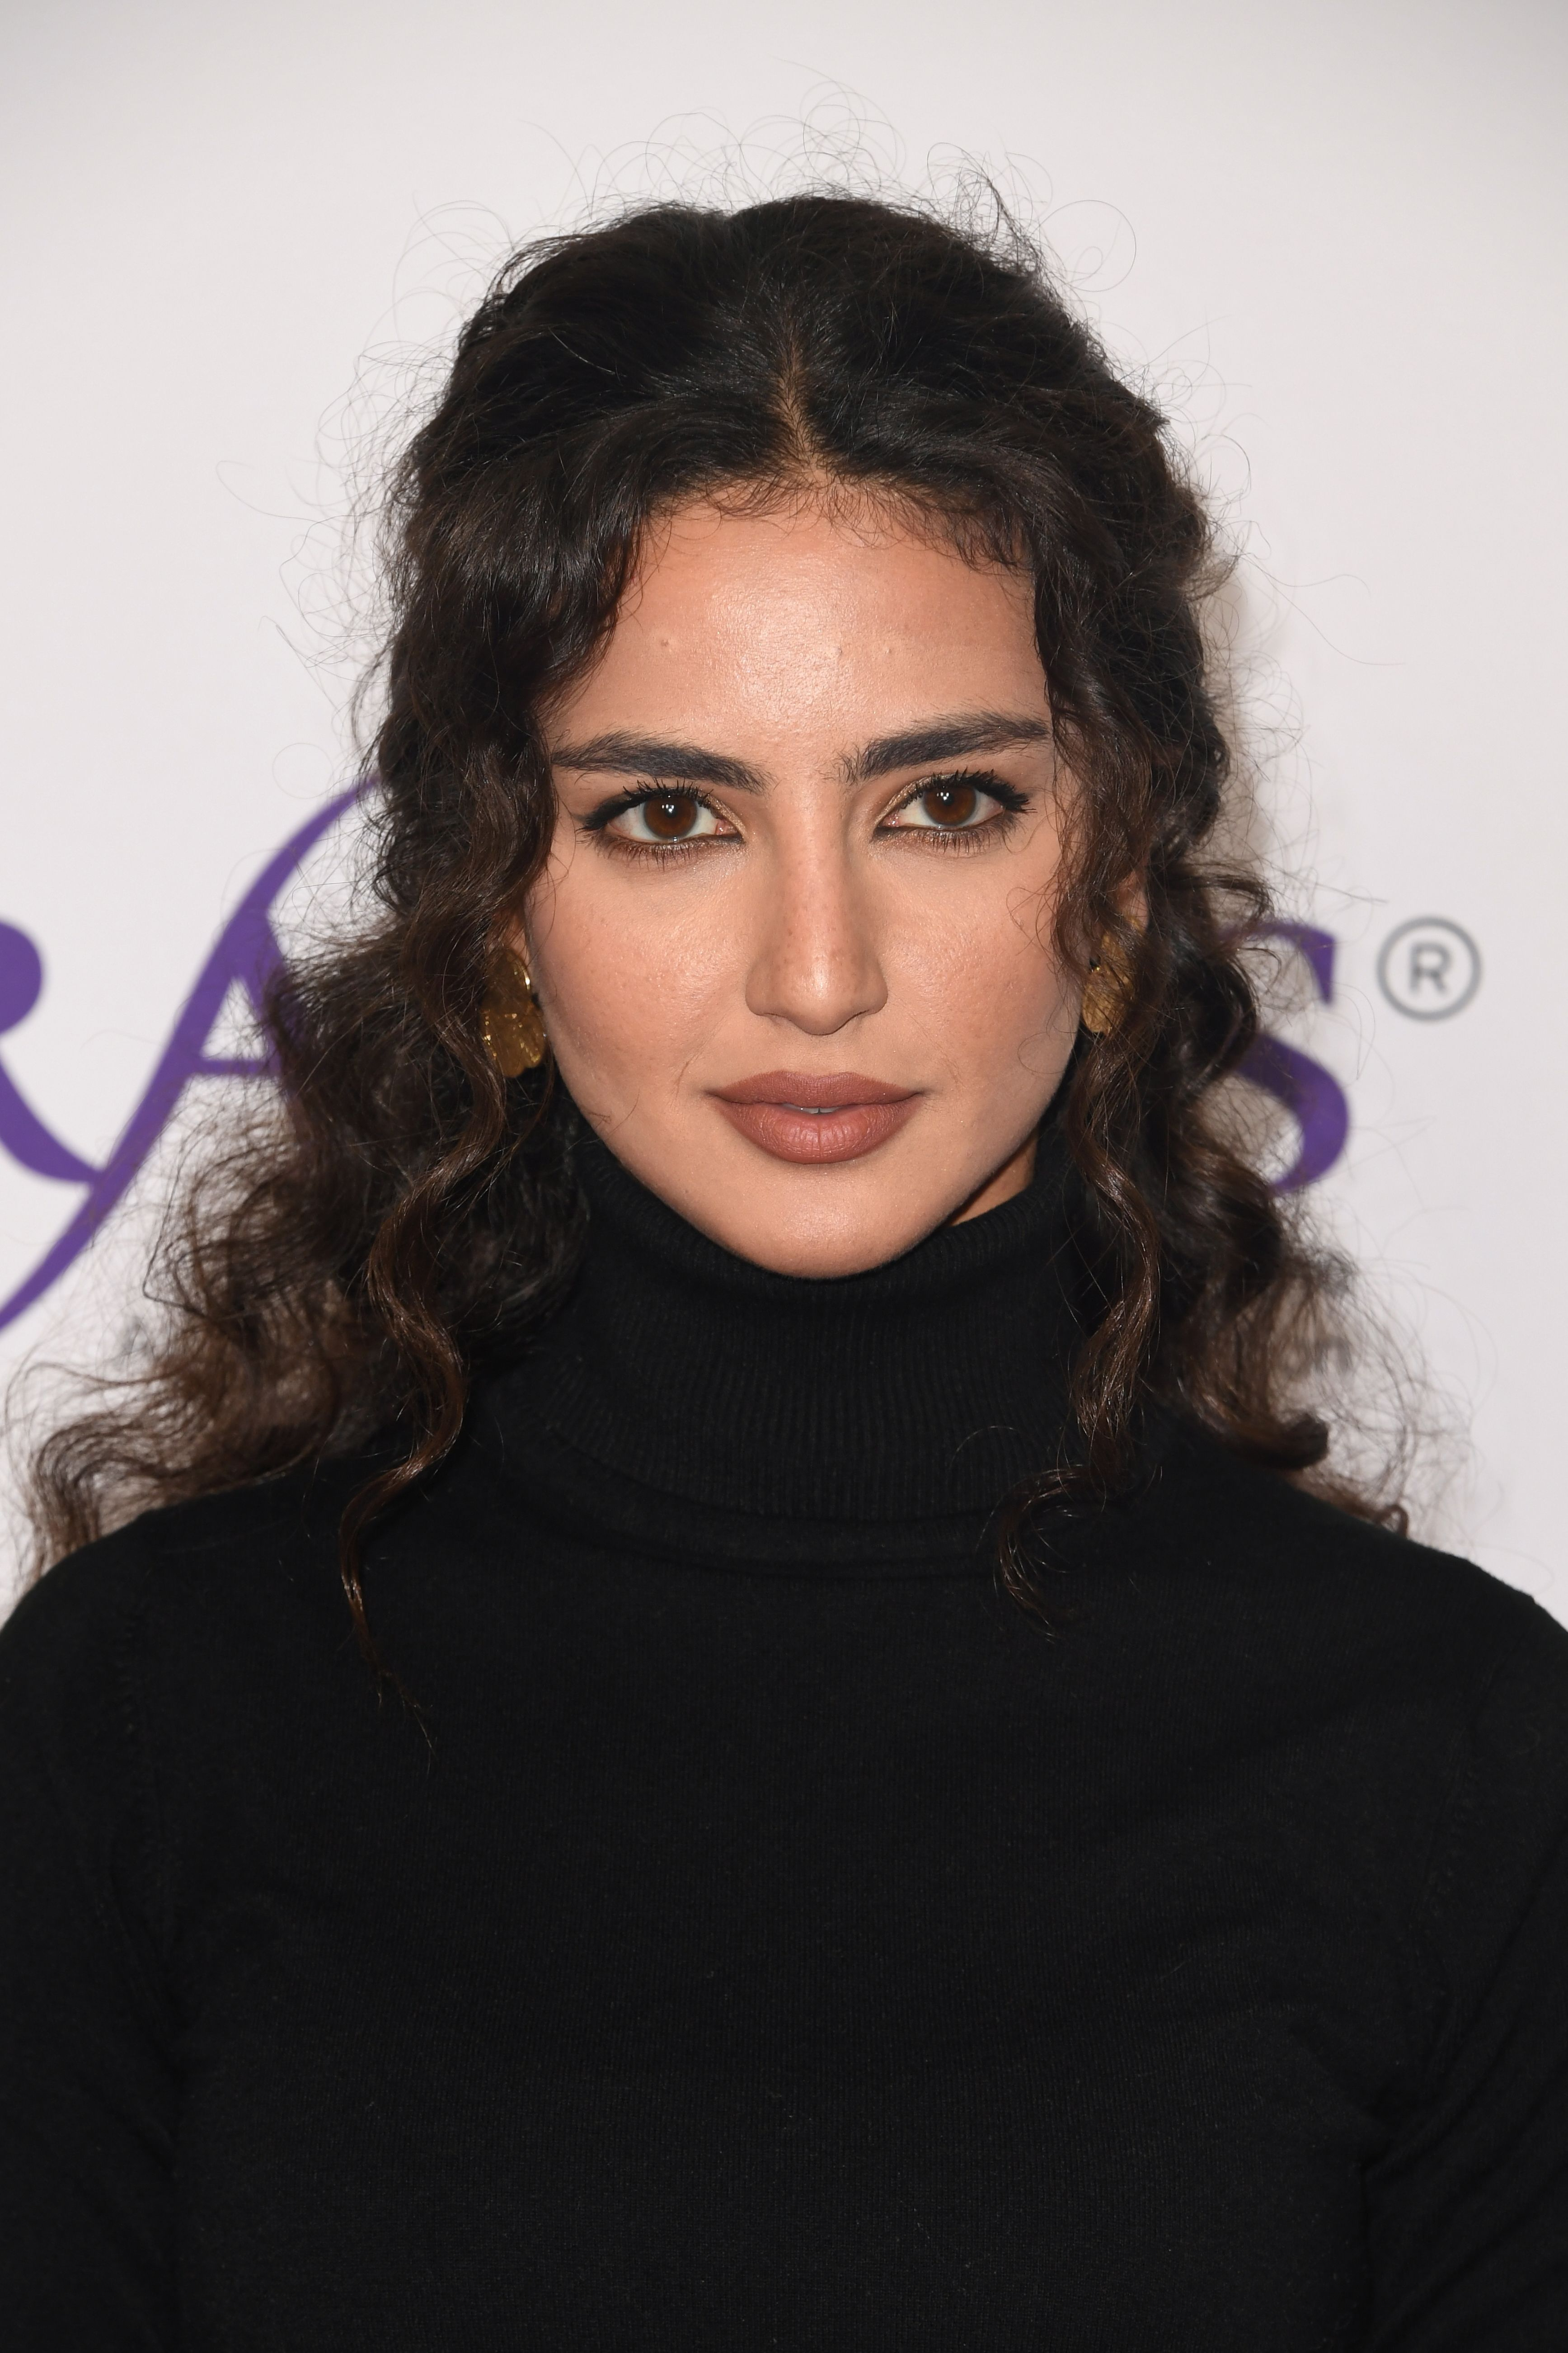 Medalion Rahimi The Actress Behind Ncis Los Angeles Fatima